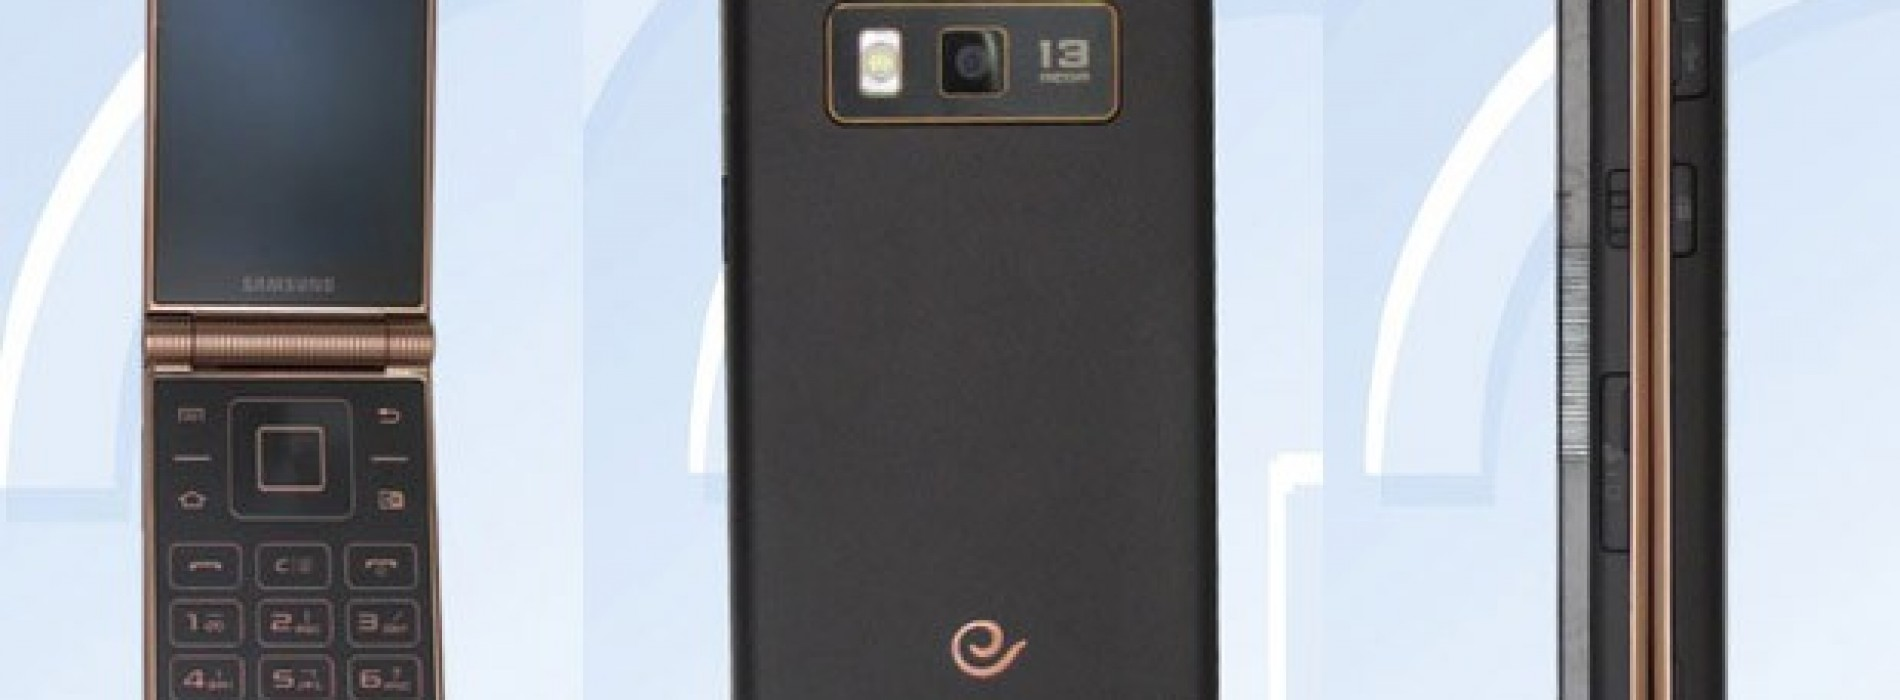 Samsung flip phone spied with unnecessary Snapdragon 800 CPU